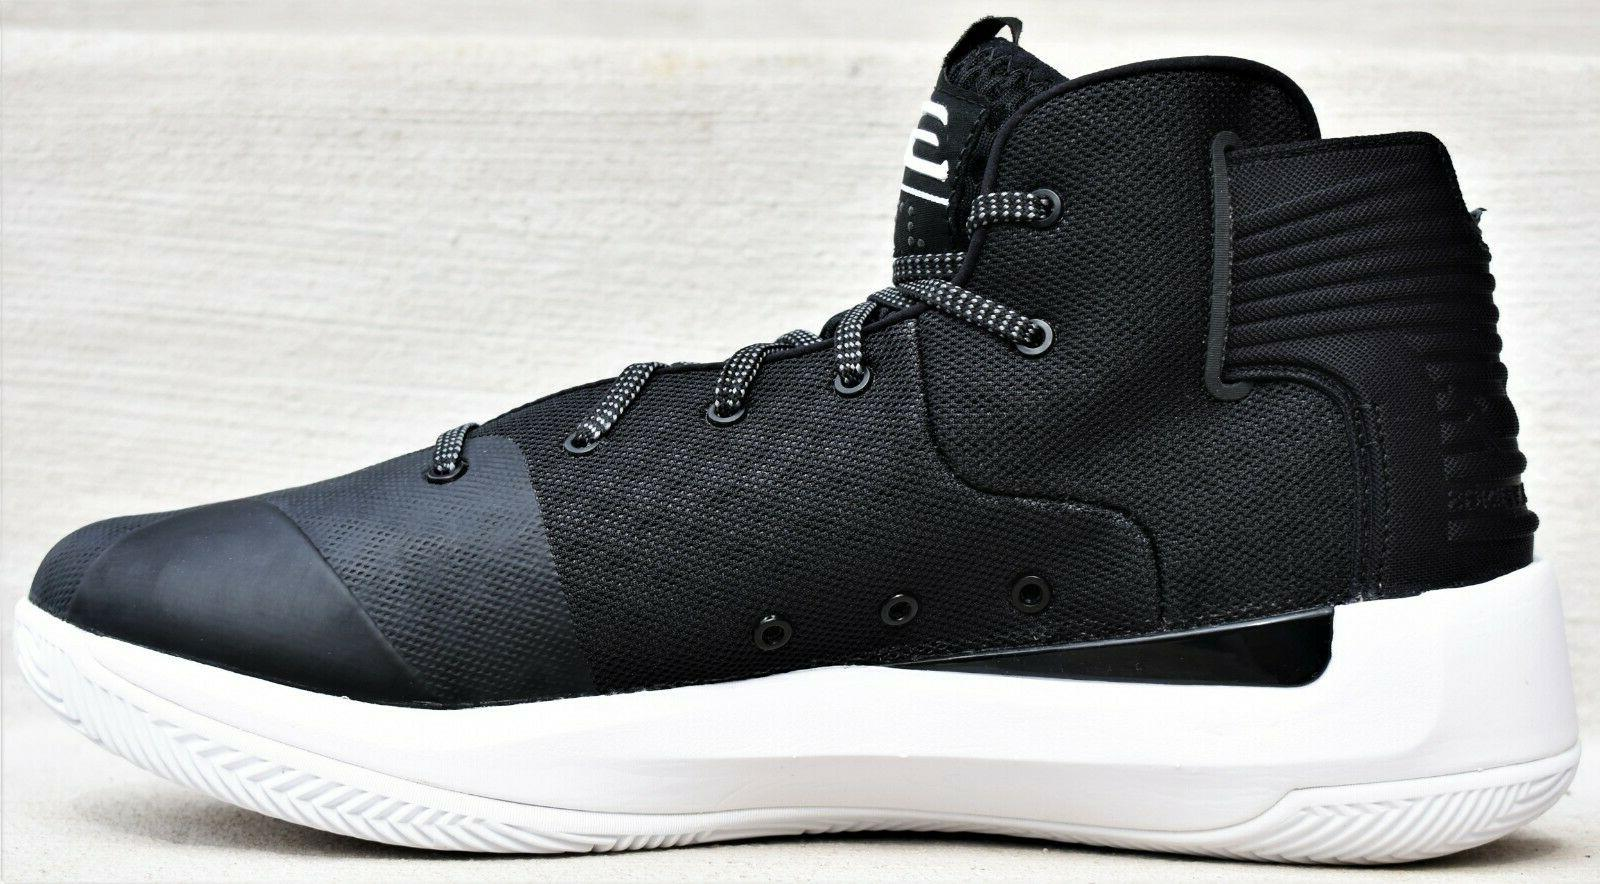 UNDER ARMOUR - New Stephen Curry Basketball Shoes Black White